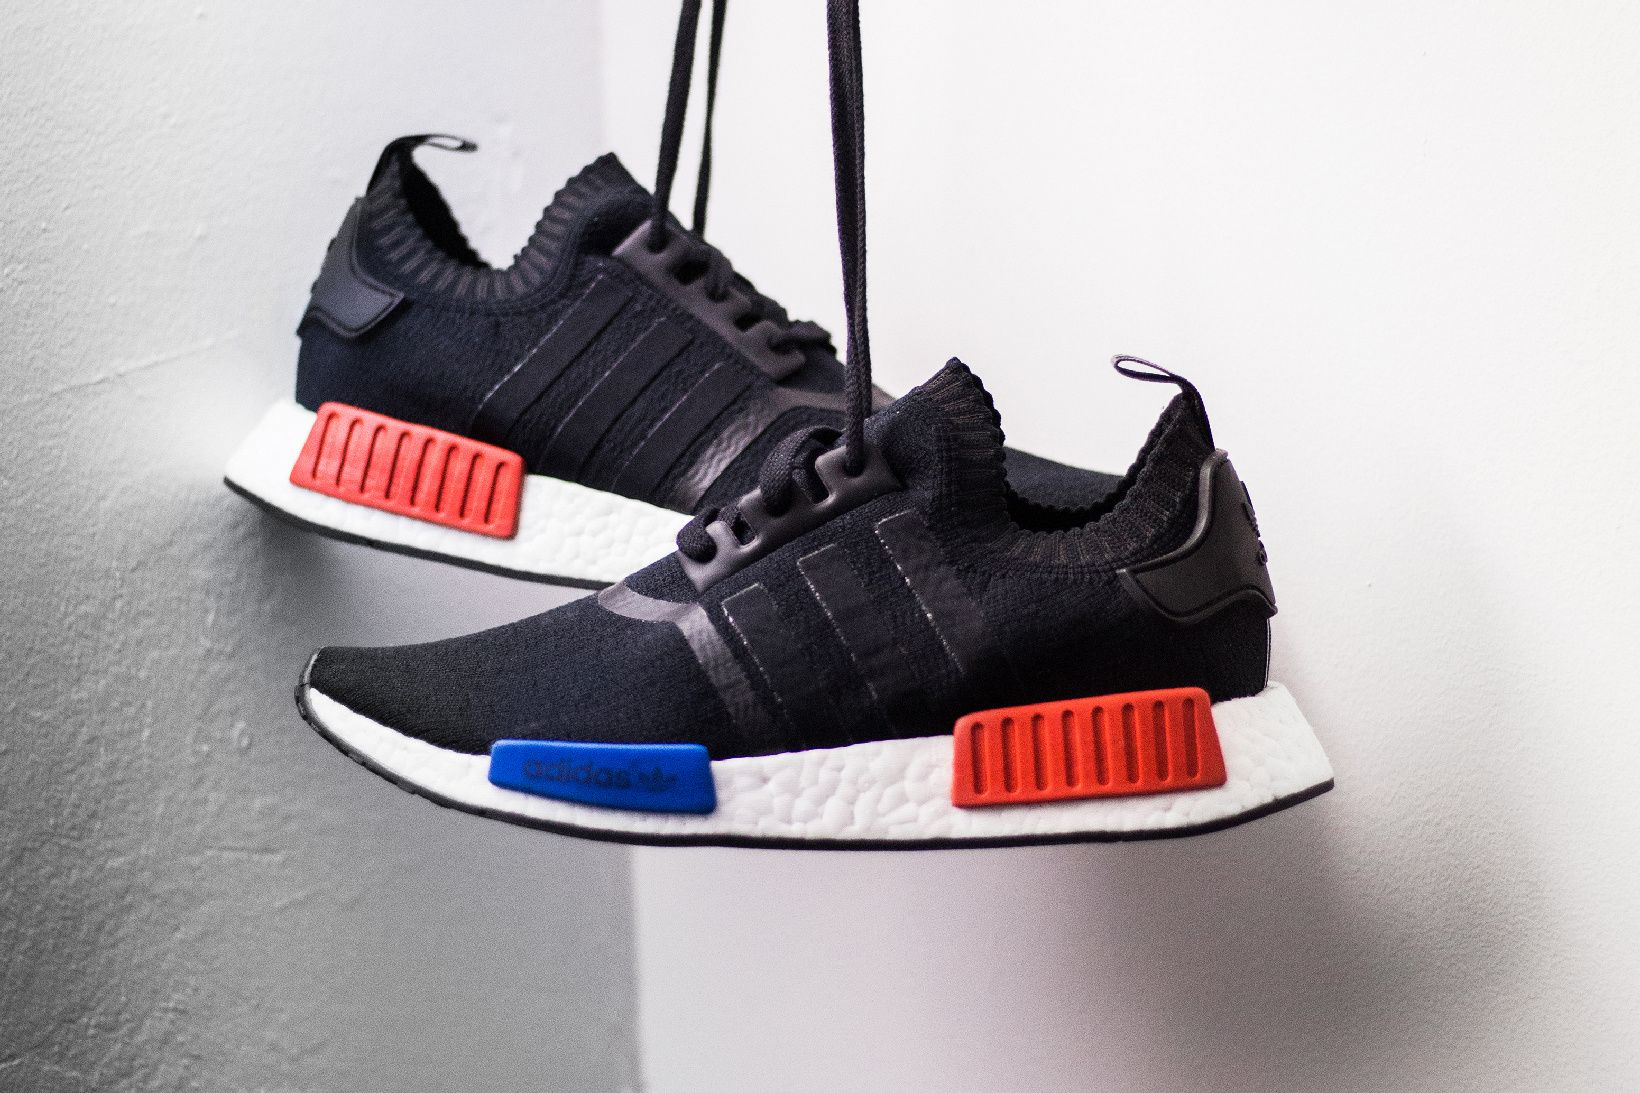 adidas nmd xr1 triple black og adidas superstars rose gold and white